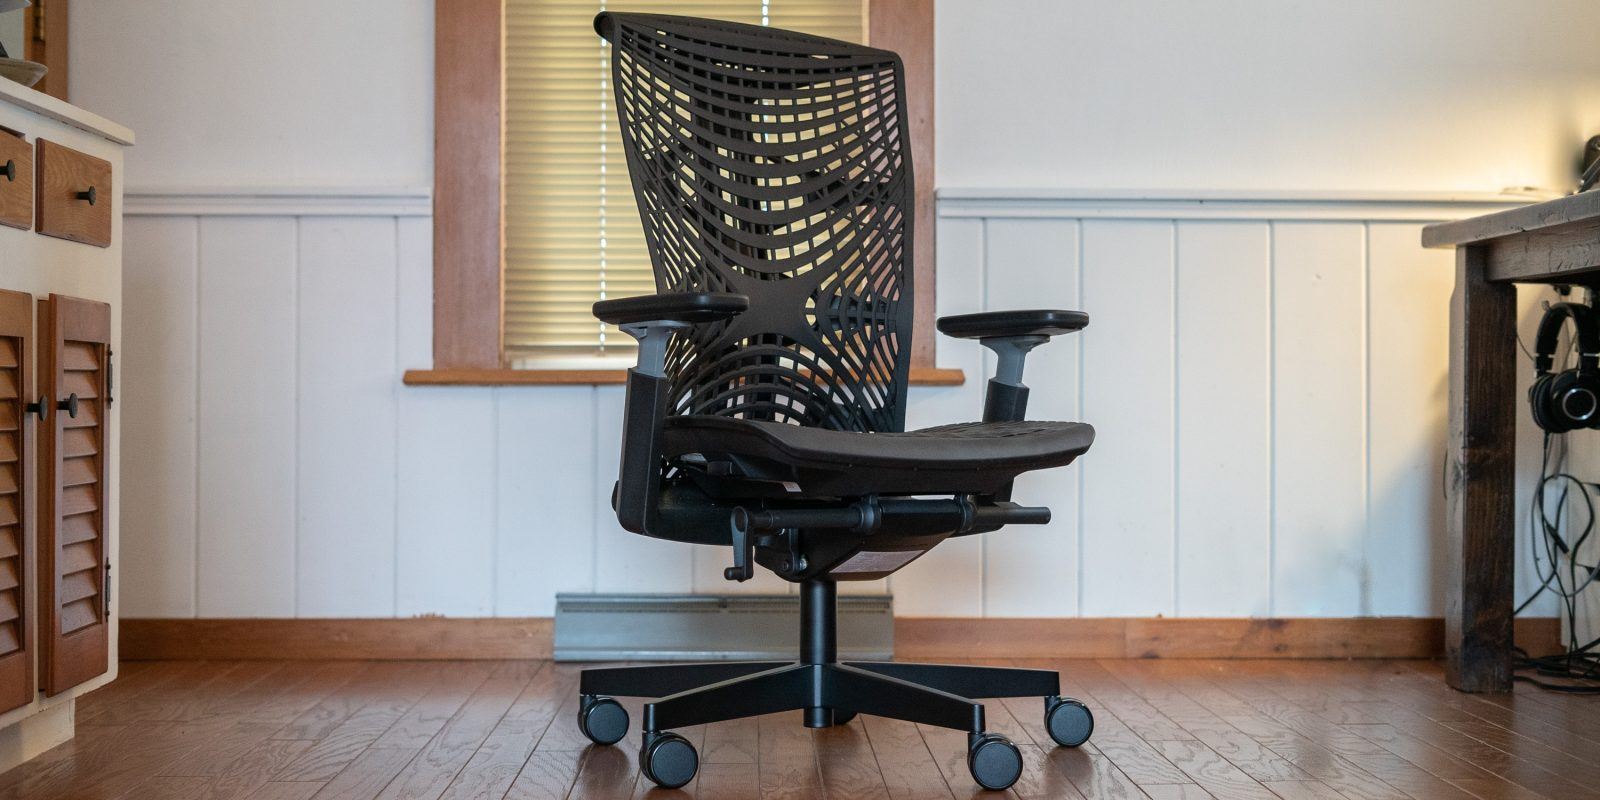 Autonomous Kinn Review: Great design and support highlight this chair [Video]